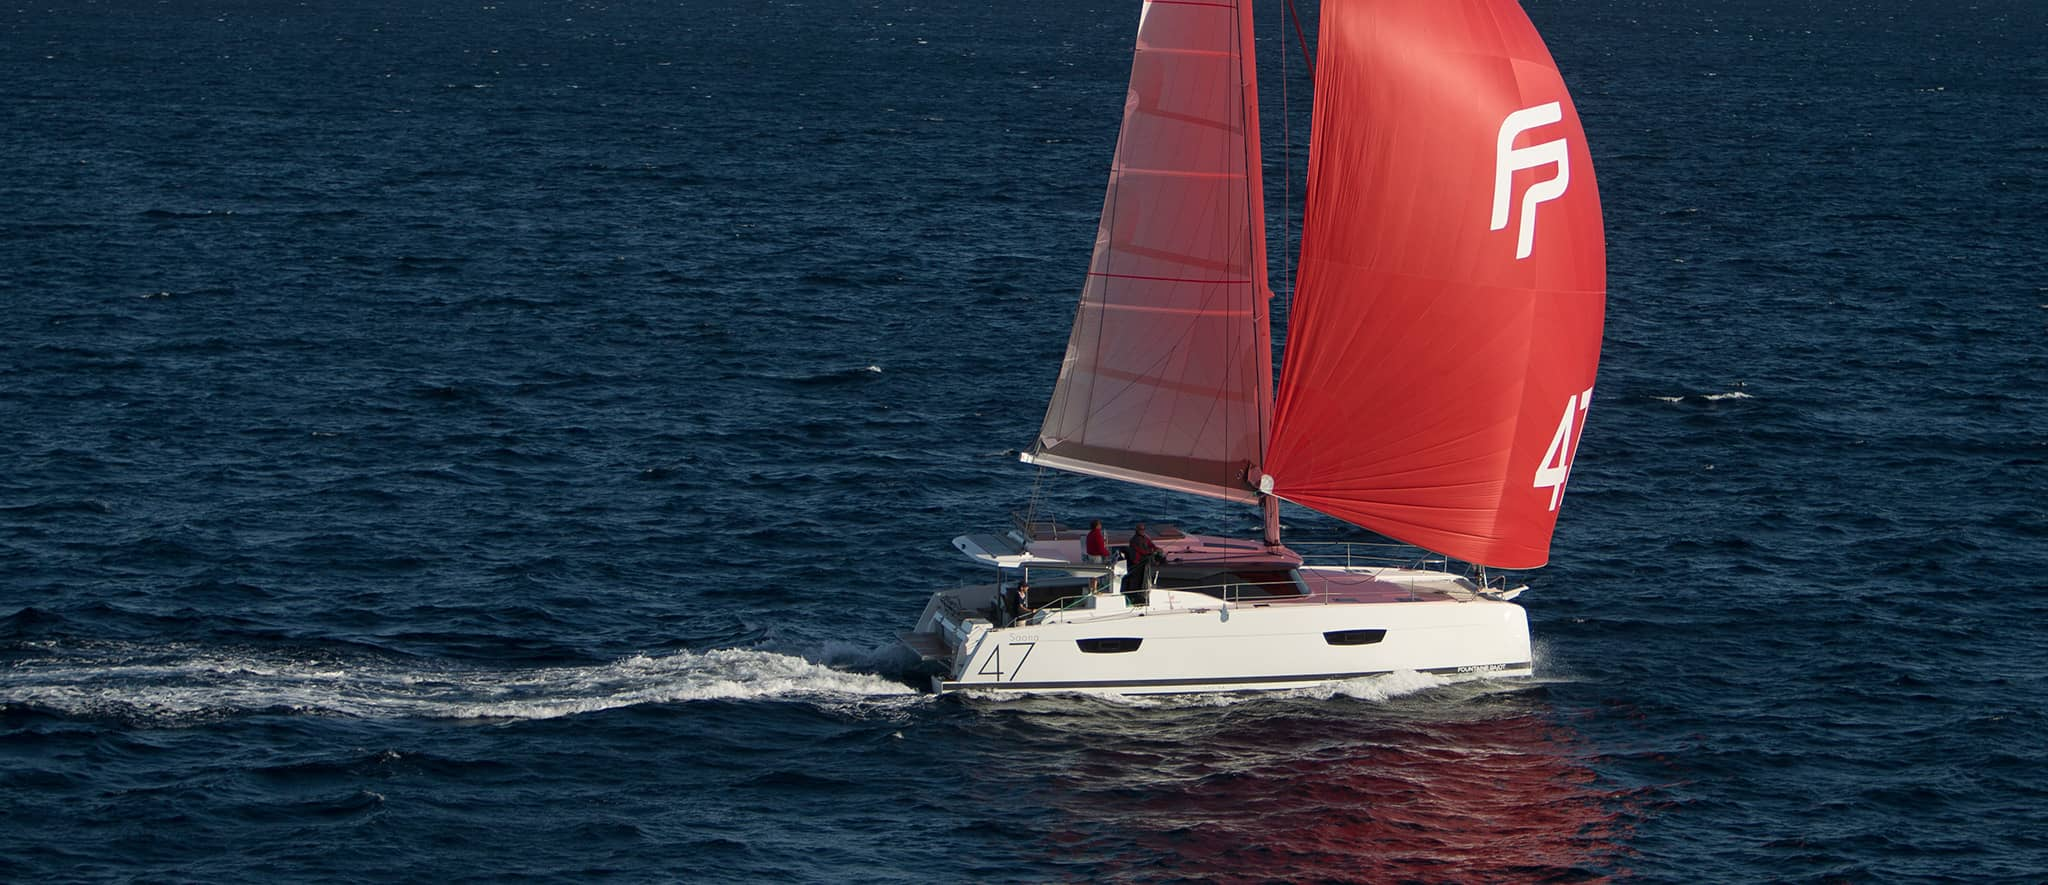 A catamaran sailing on an open body of water on a sunny day